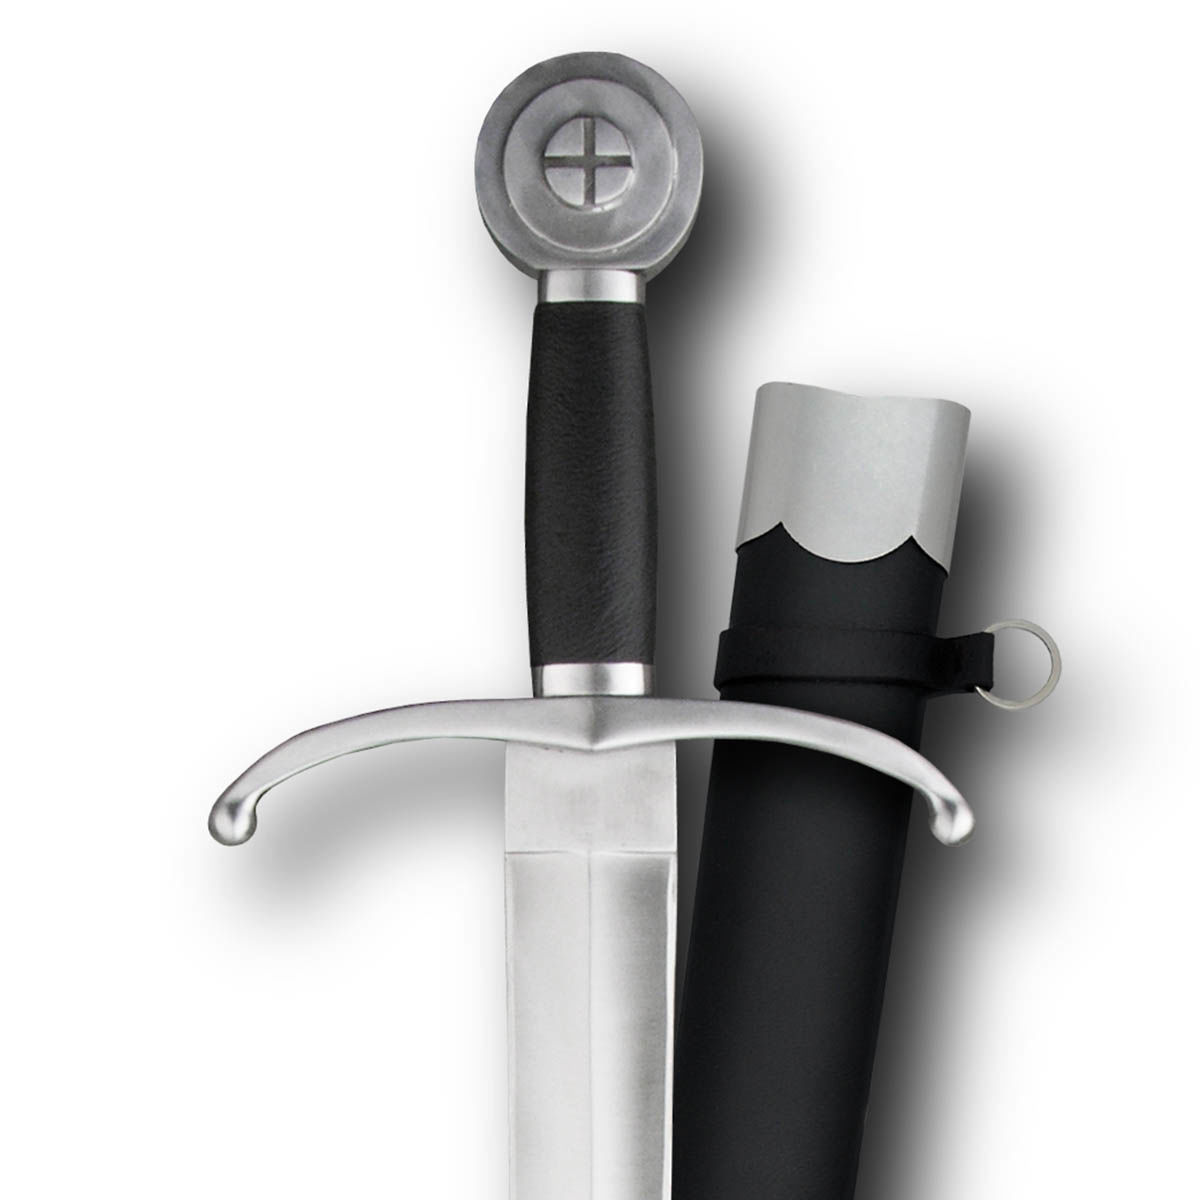 Henry V Sword by Paul Chen / Hanwei is a cut-and-thrust sword with down-swept quillons, wheel pommel and includes scabbard